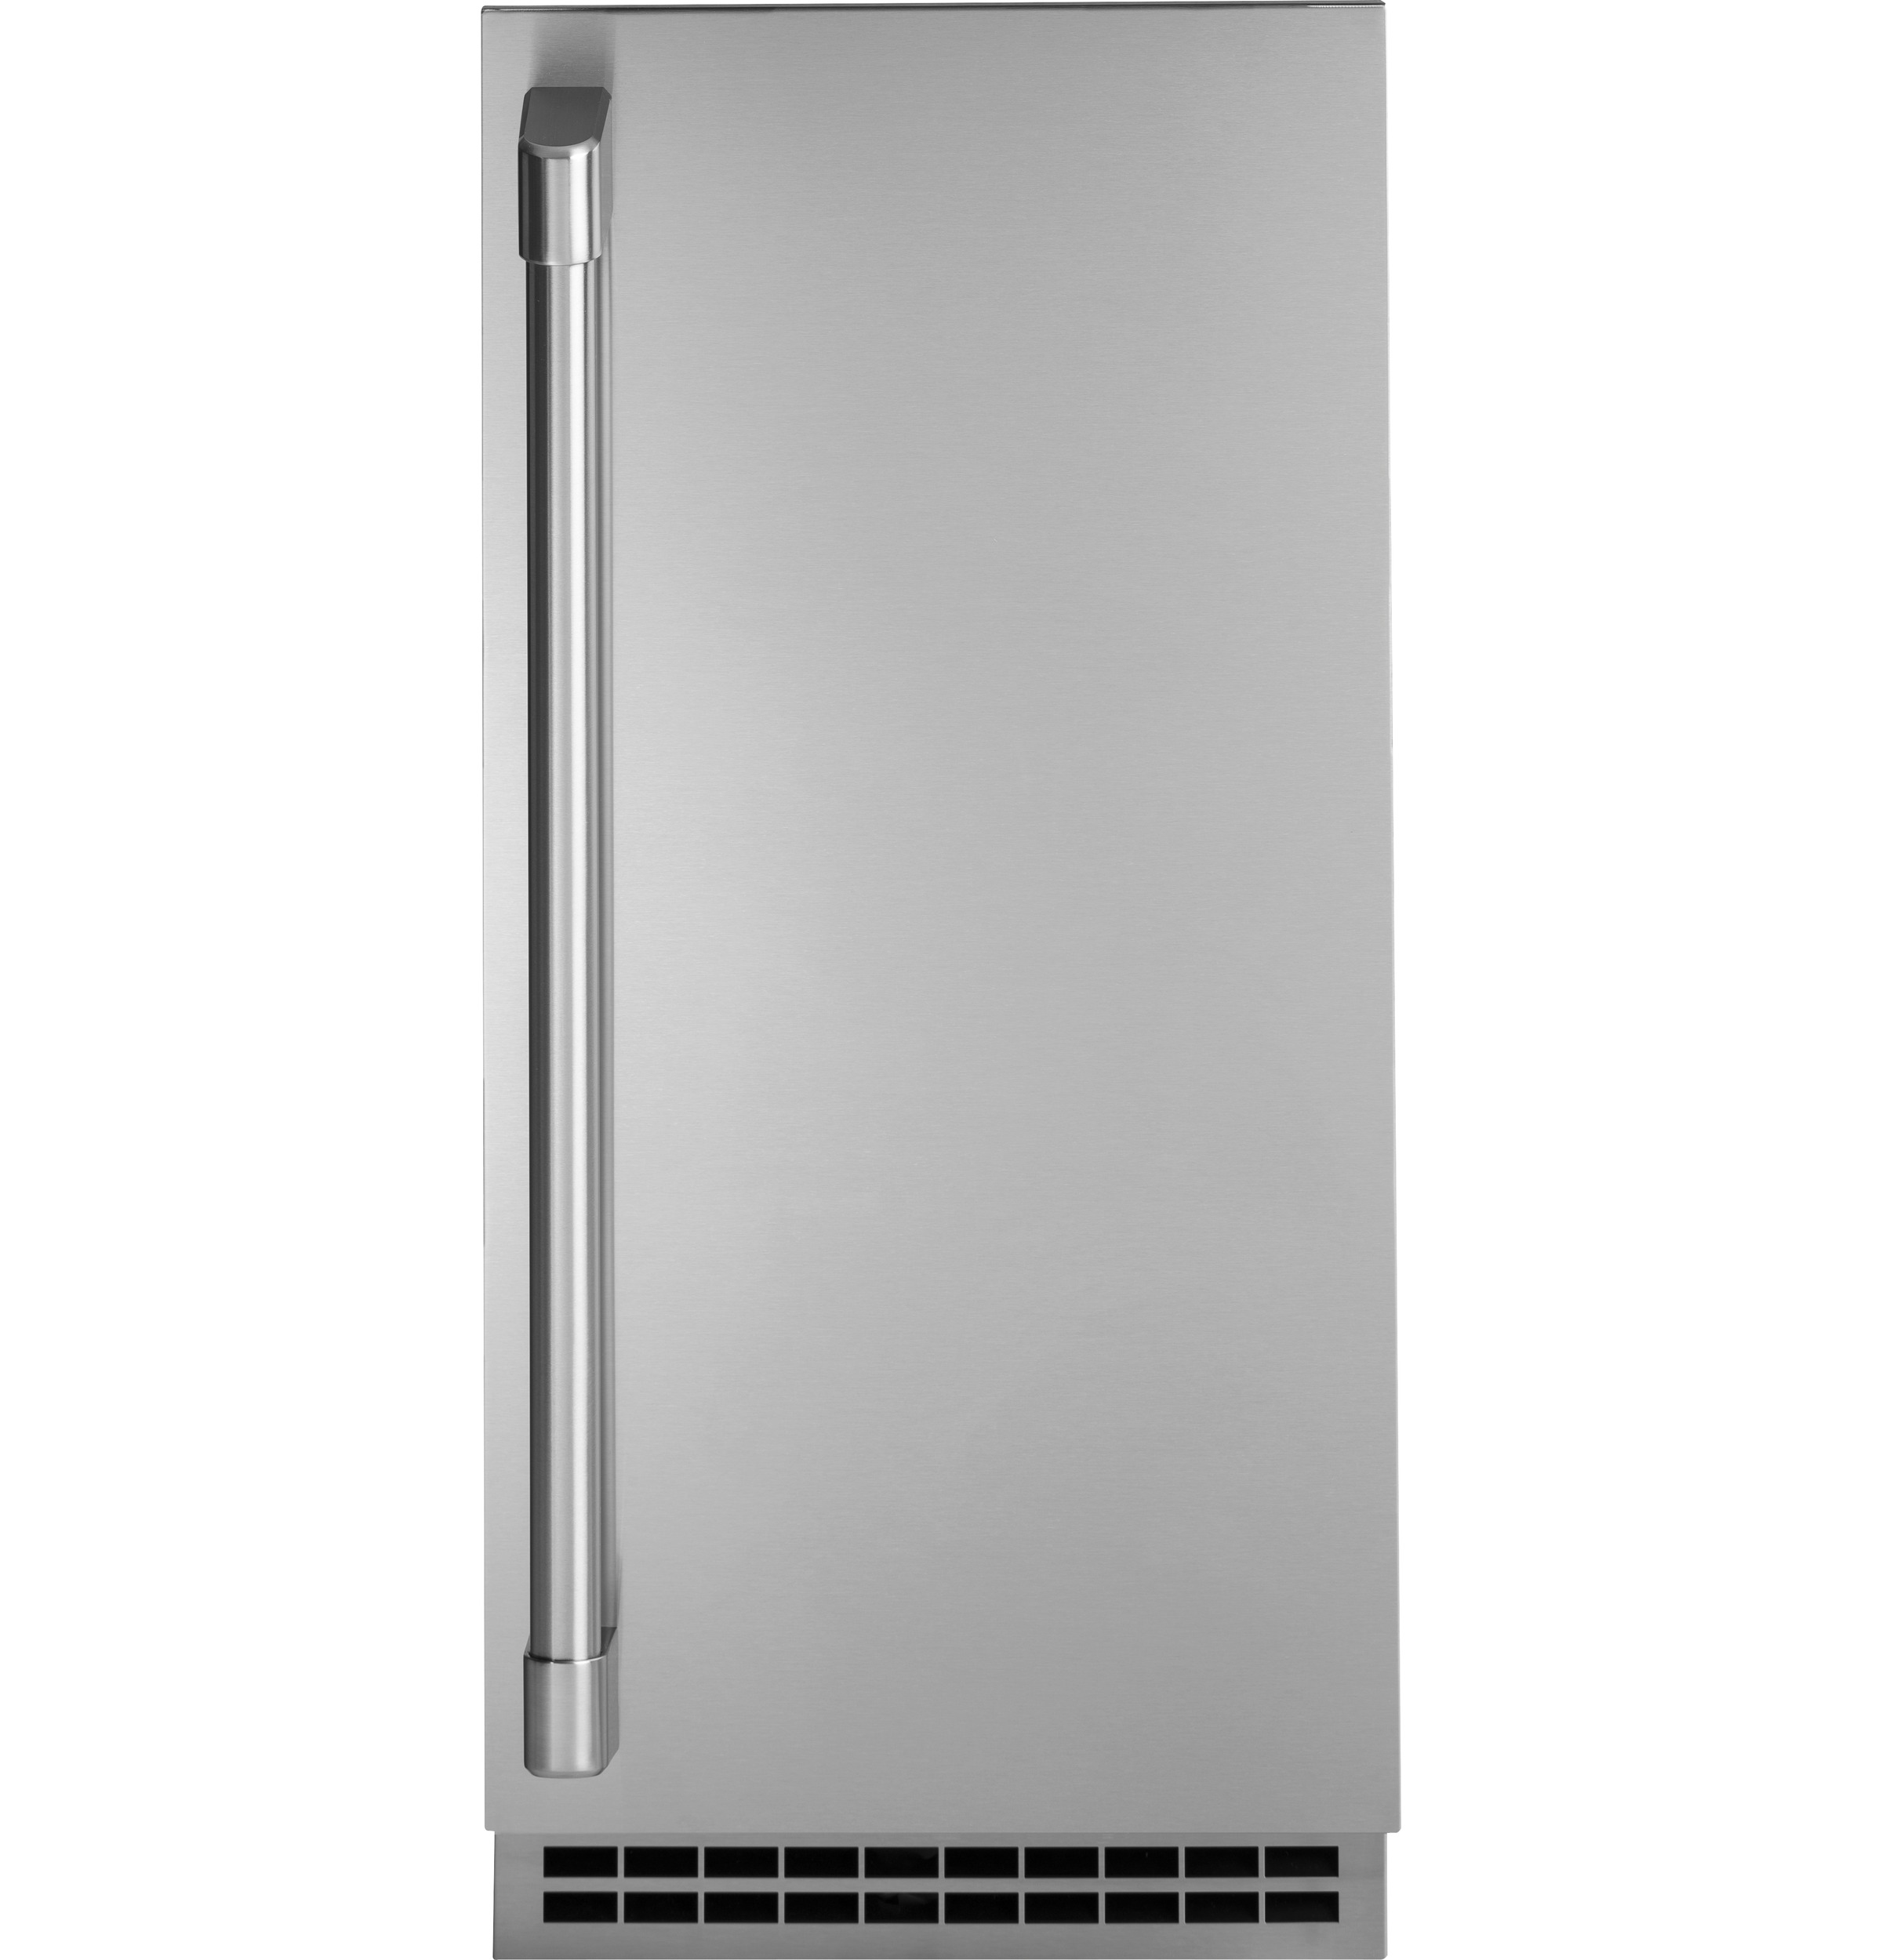 GE Cafe GE Cafe Series Stainless Steel Ice Maker Door Kit